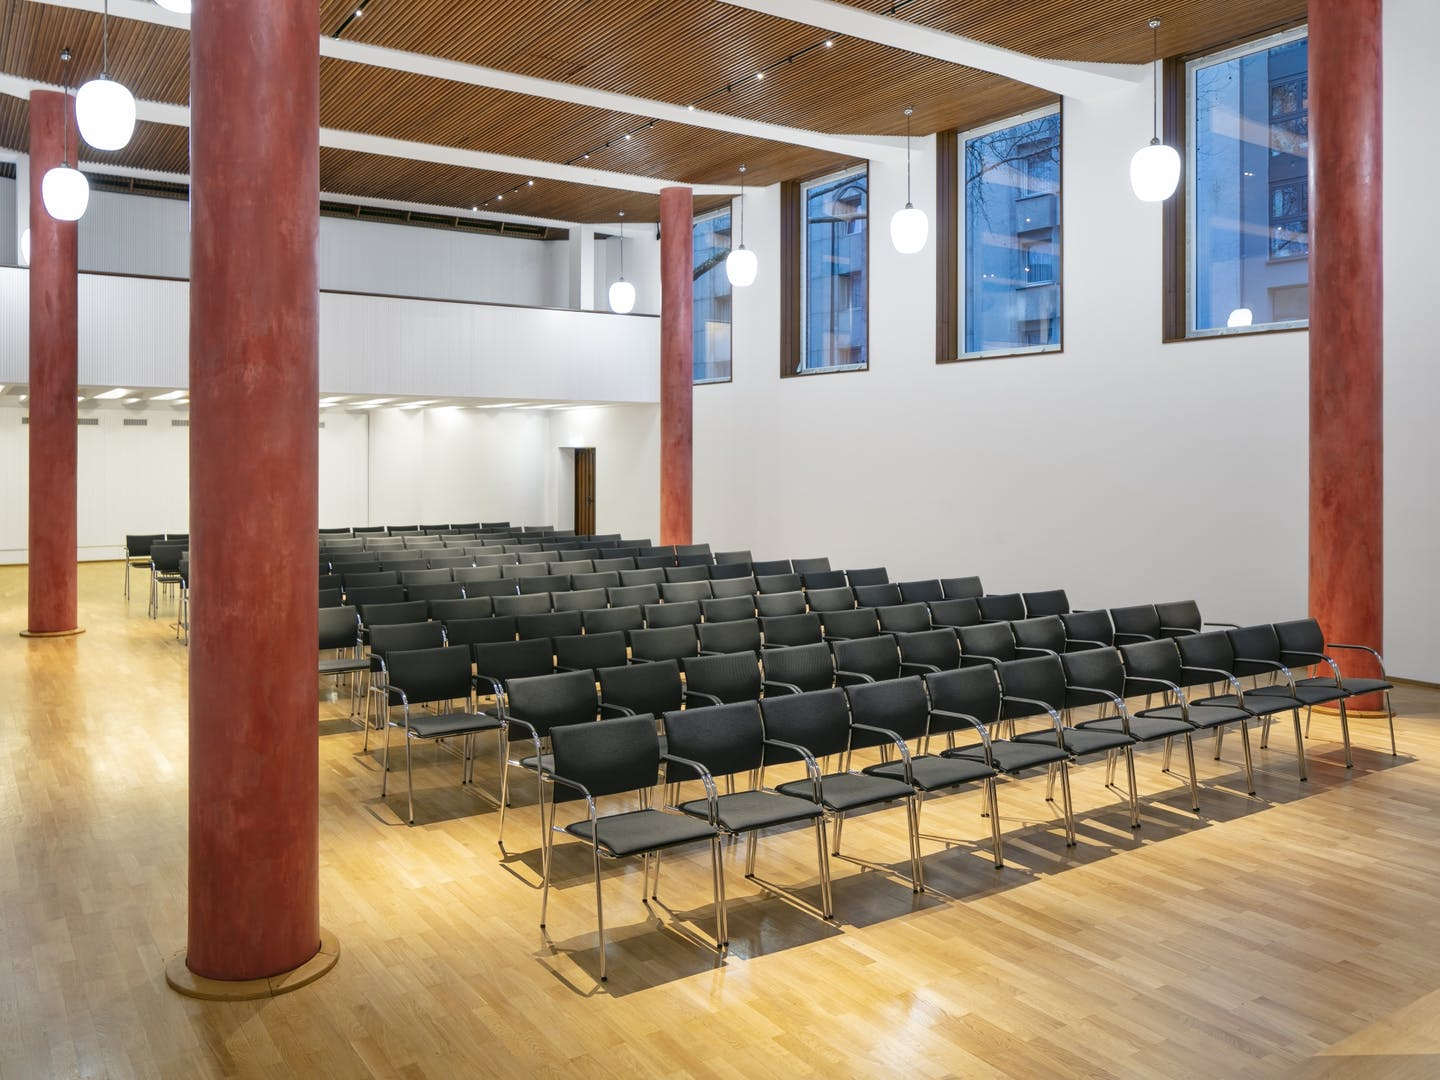 Hall with theatre seating